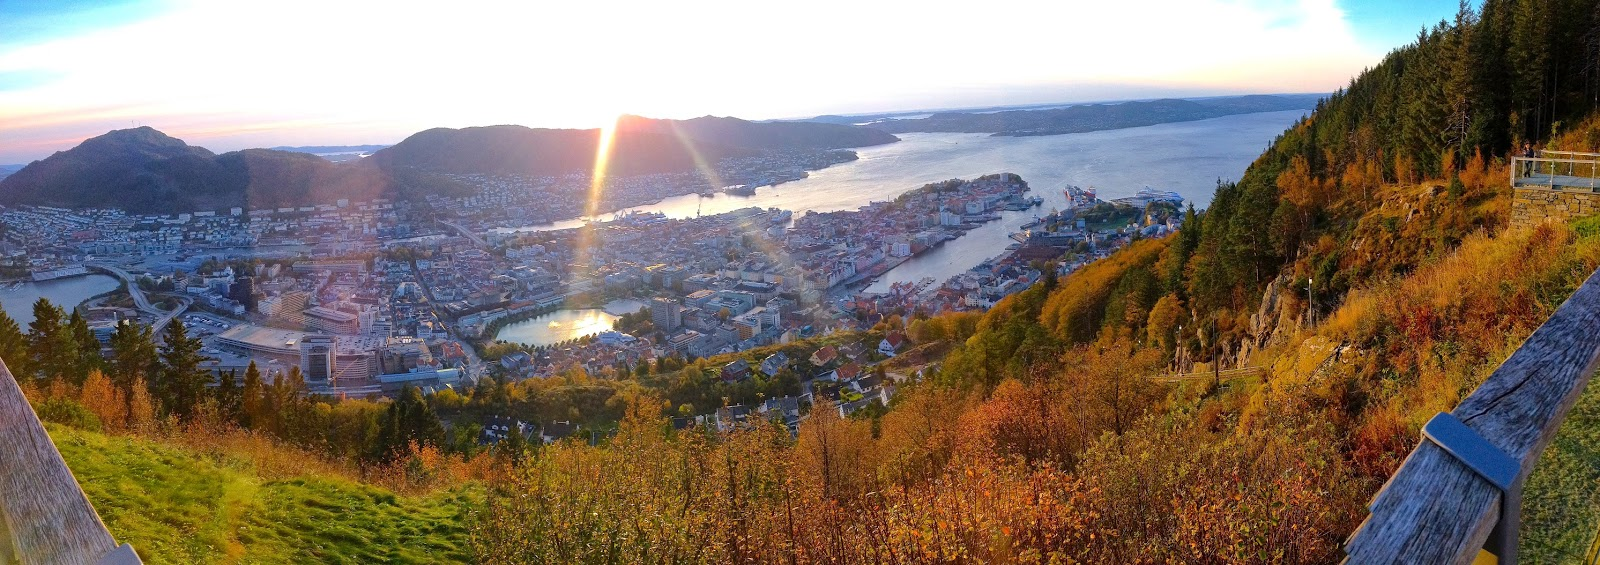 panorama view of Bergen, Norway